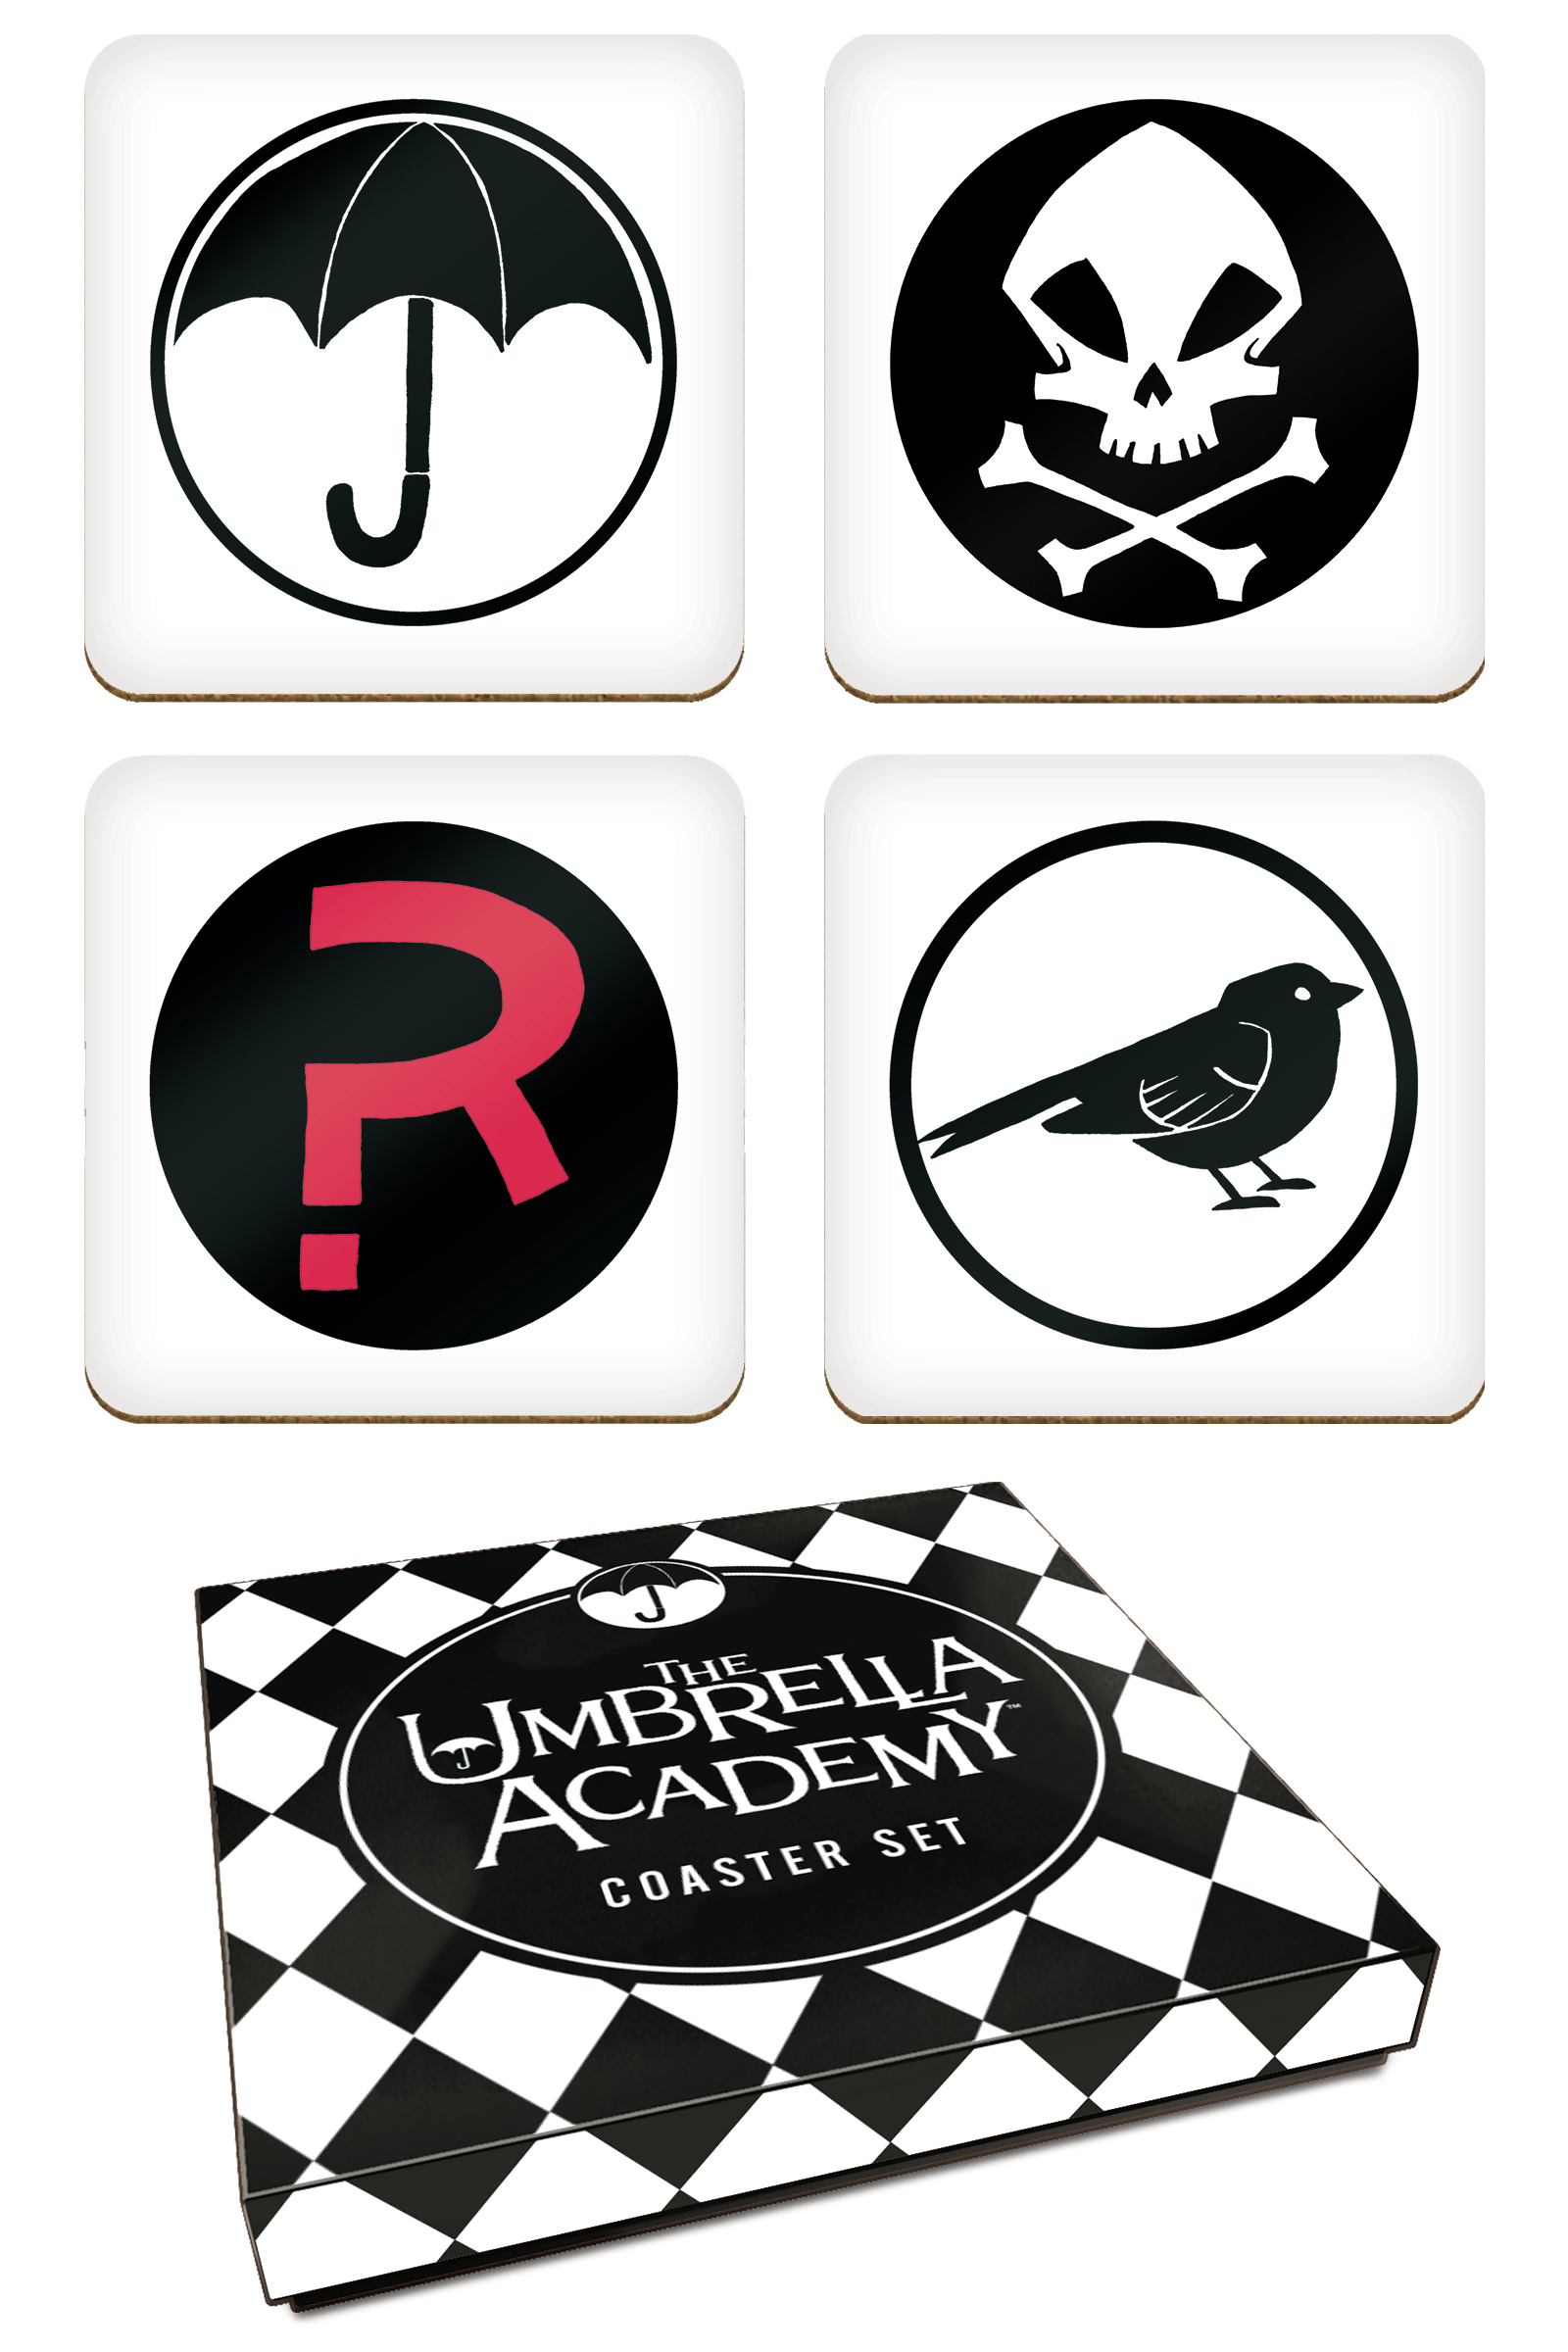 UMBRELLA ACADEMY COASTER SET